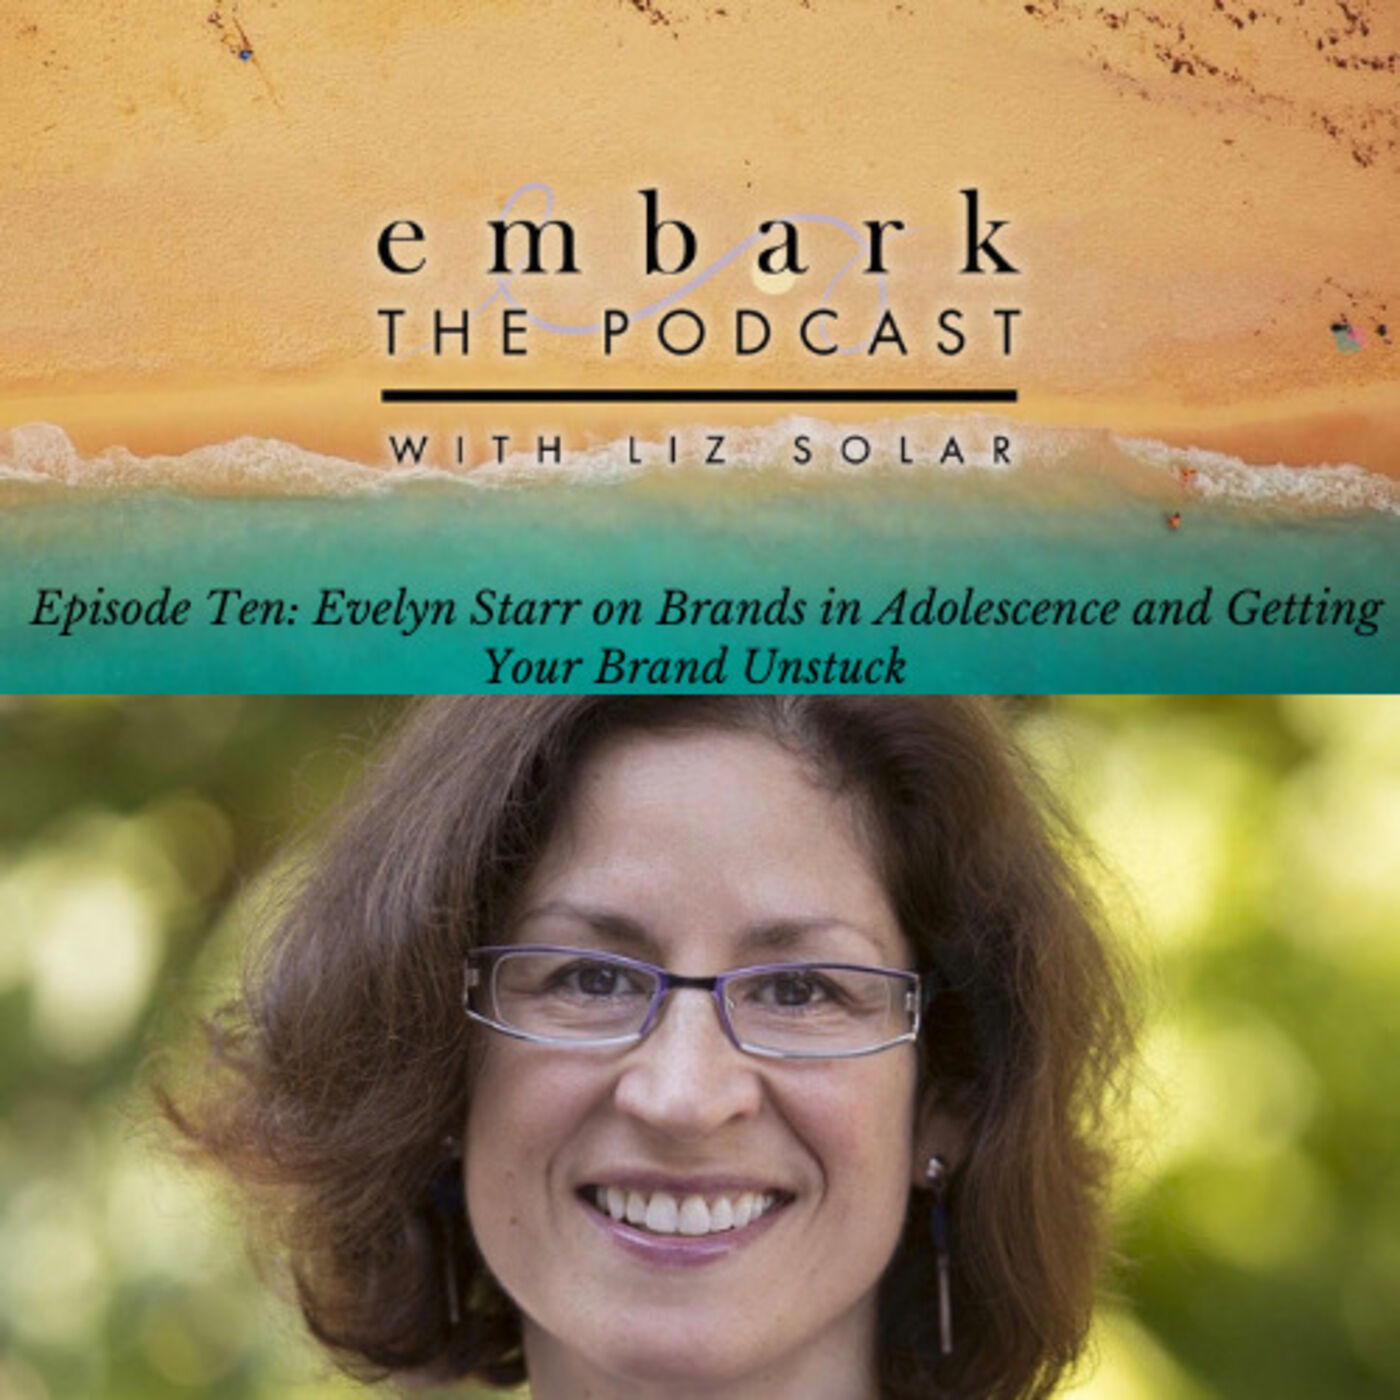 Evelyn Starr on Brands in Adolescence and Getting Your Brand Unstuck